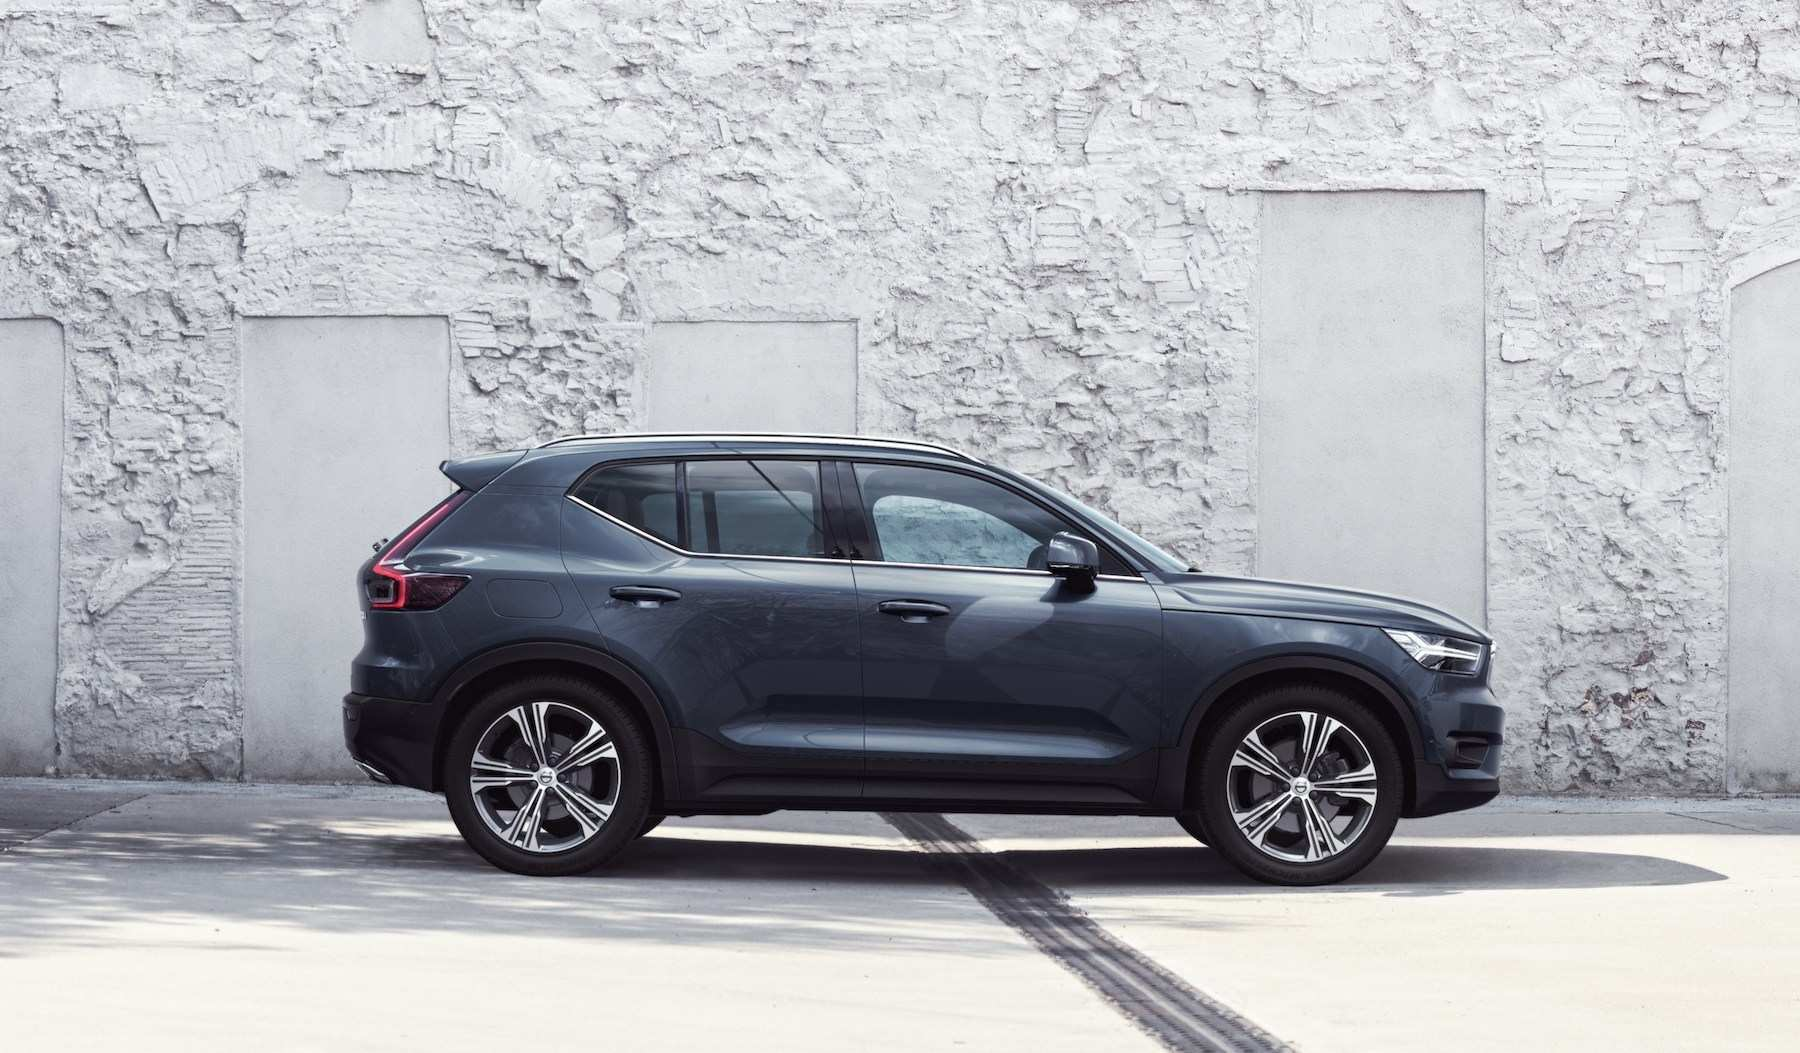 79 Concept of New Cx40 Volvo 2019 New Review Pictures with New Cx40 Volvo 2019 New Review